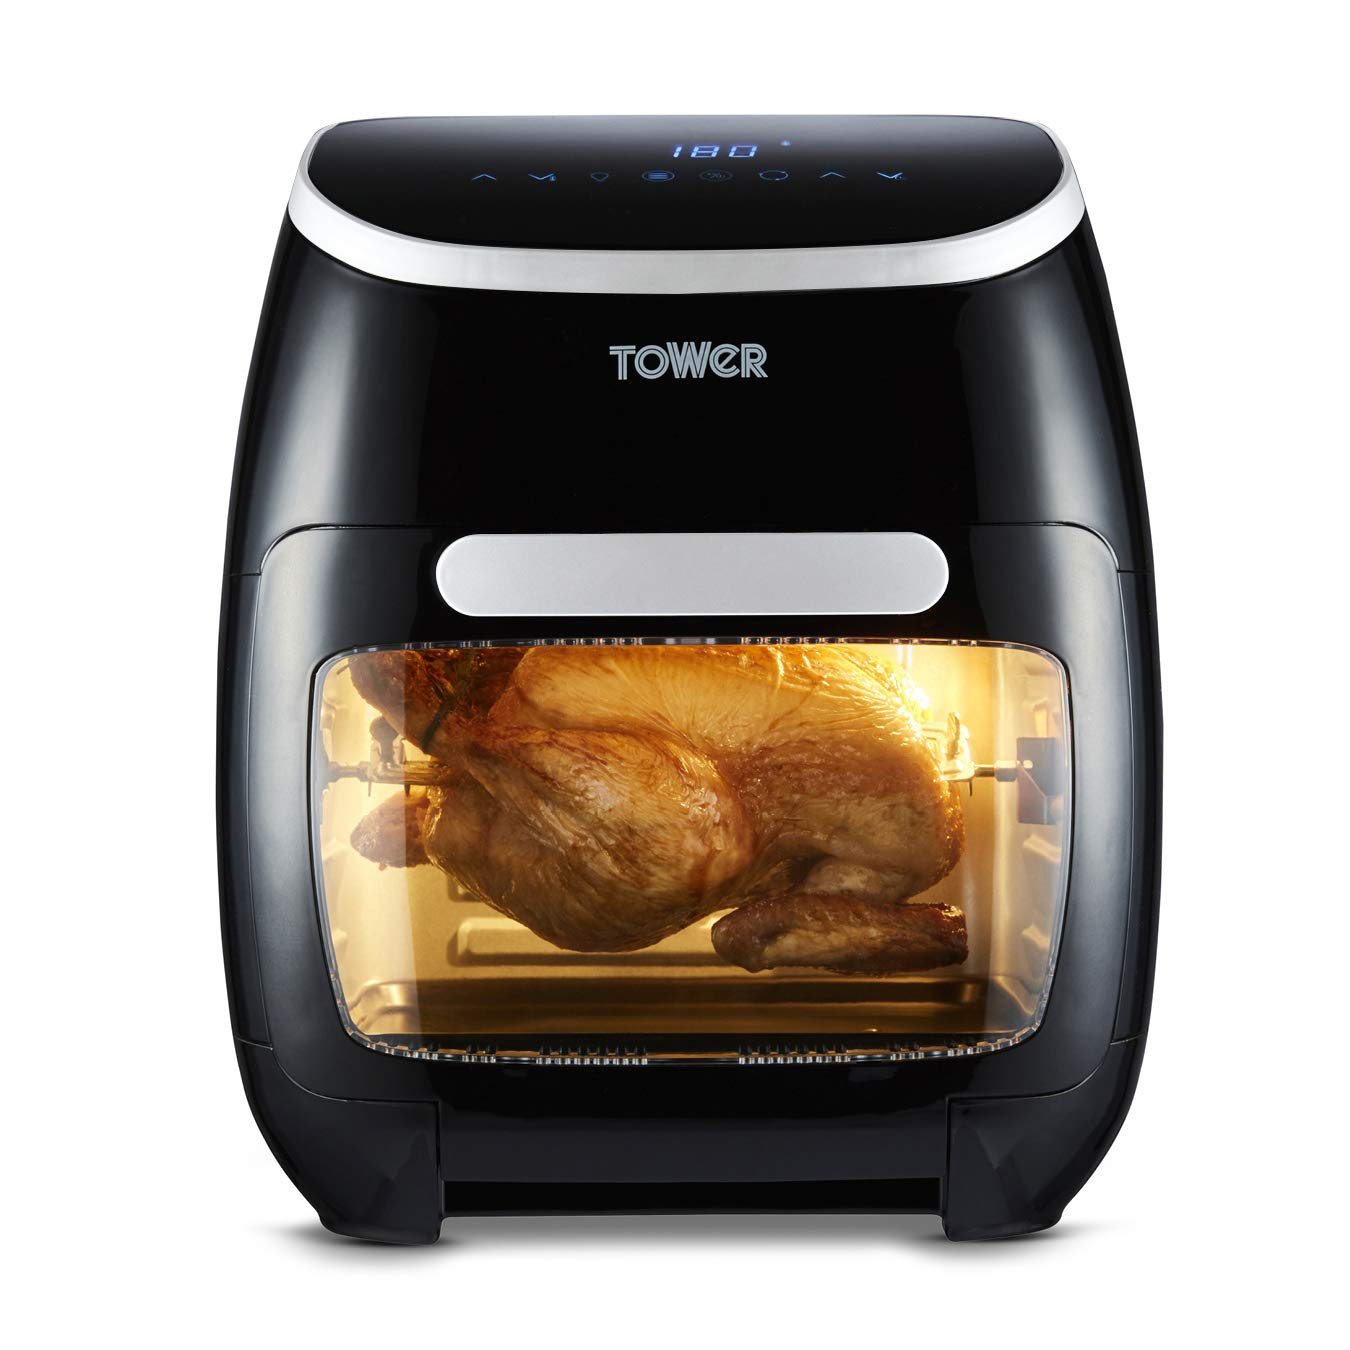 Tower T17065 Manual Air Fryer Oven with Rapid Air Circulation and 10 Preset Cooking Options 12 Litre Black